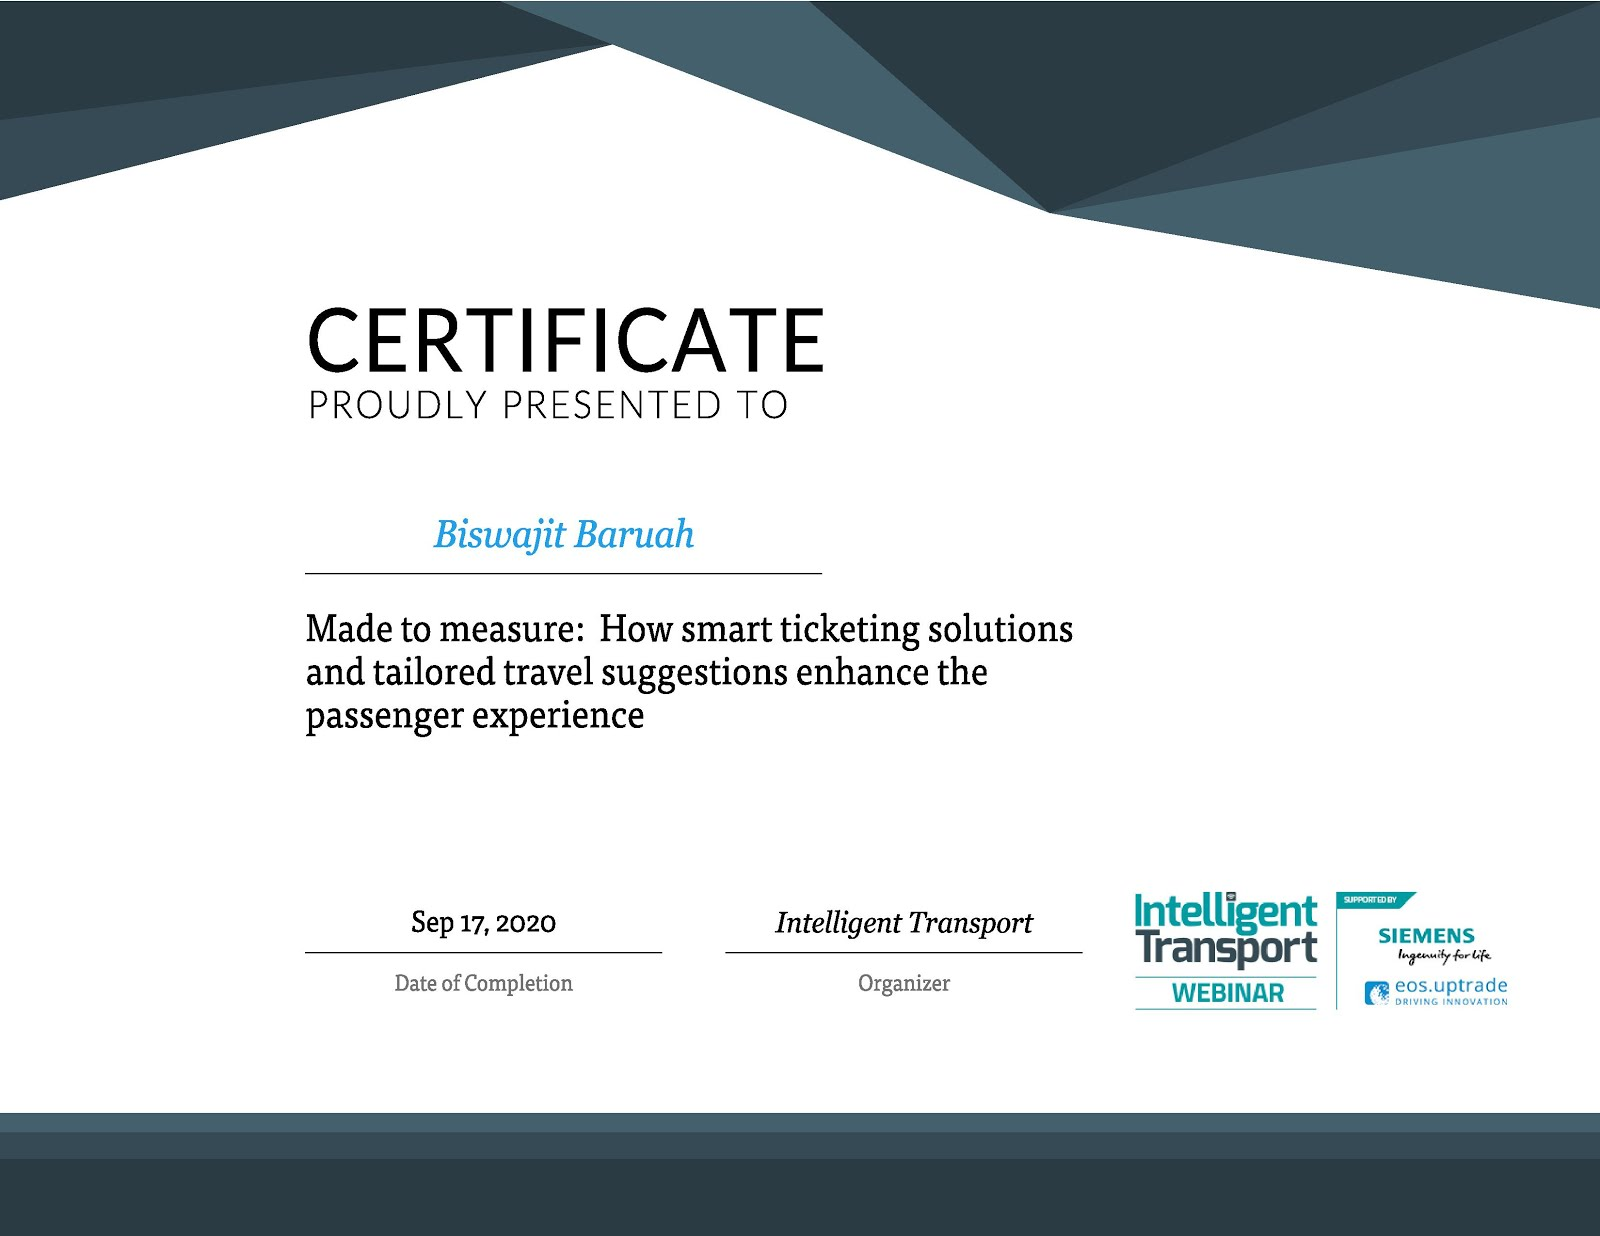 CERTIFICATE FOR ATTENDING INTELLIGENT TRANSPORT (UNITED KINGDOM) AND SIEMENS MOBILITY WEBINAR